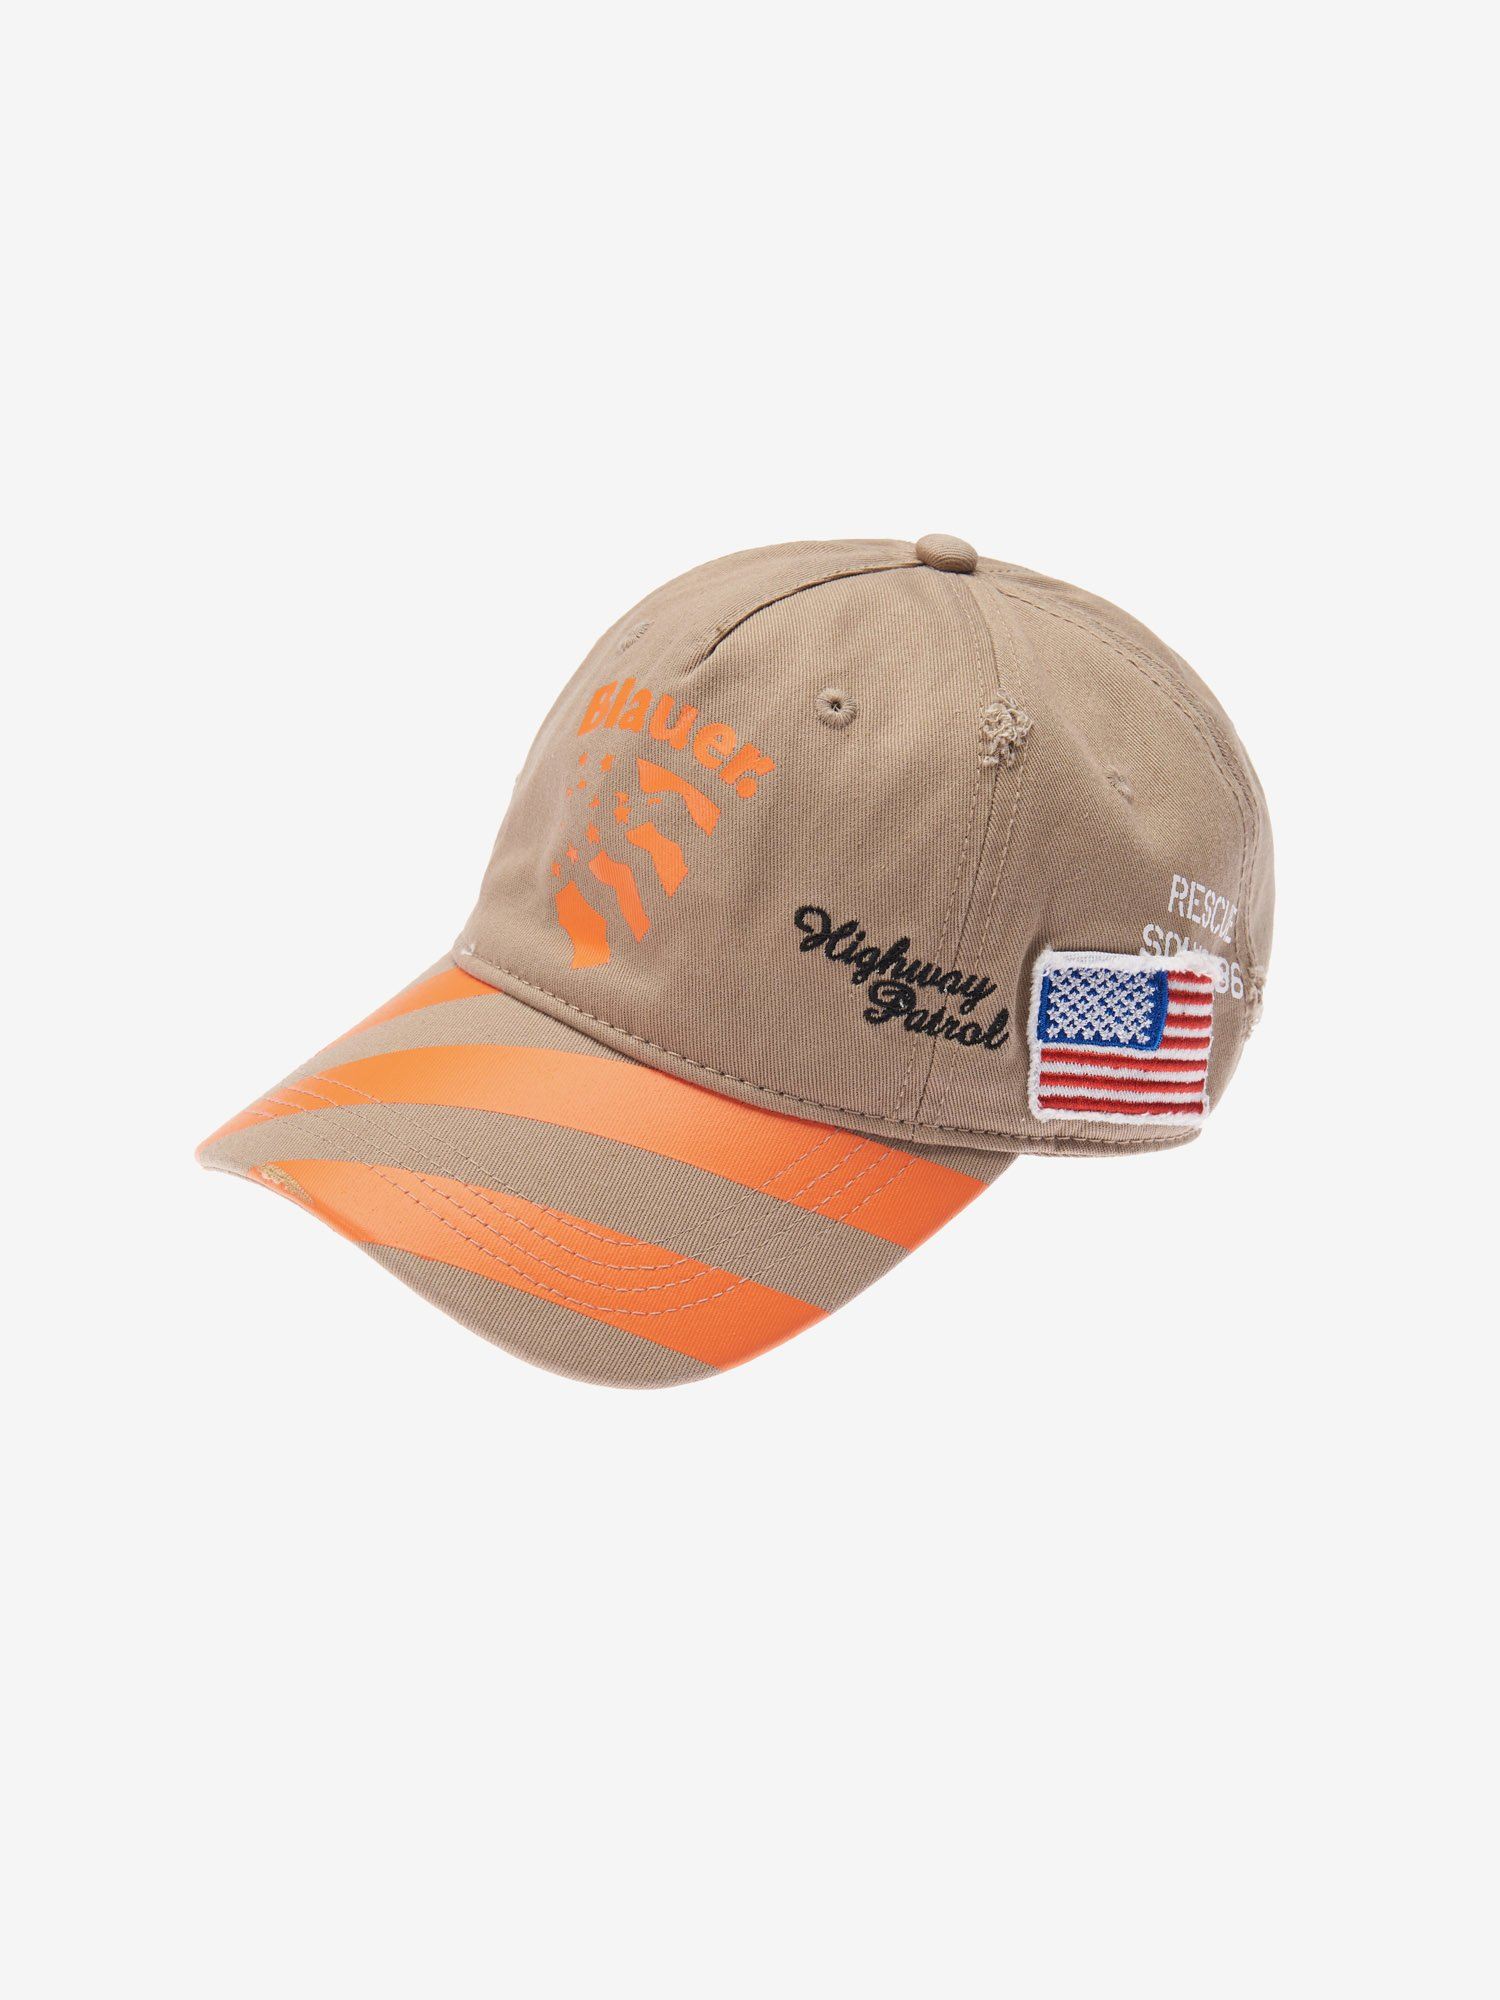 BASEBALL CAP WITH PATCHES - Blauer